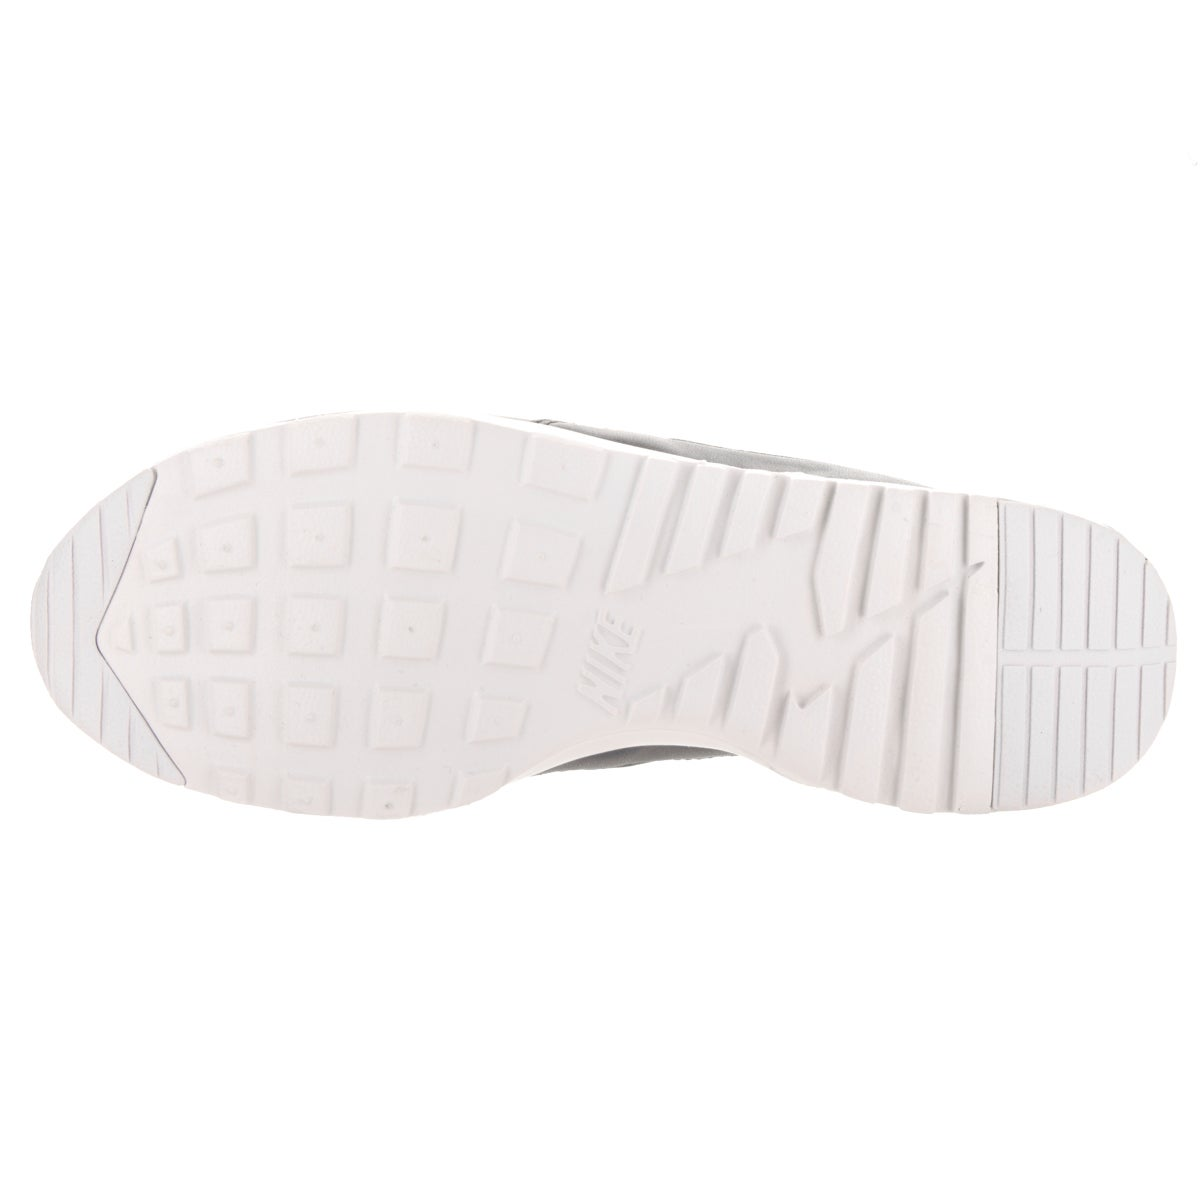 brand new ad7c7 faab2 Shop Nike Women s Air Max Thea SE Running Shoe - Free Shipping Today -  Overstock - 14004482